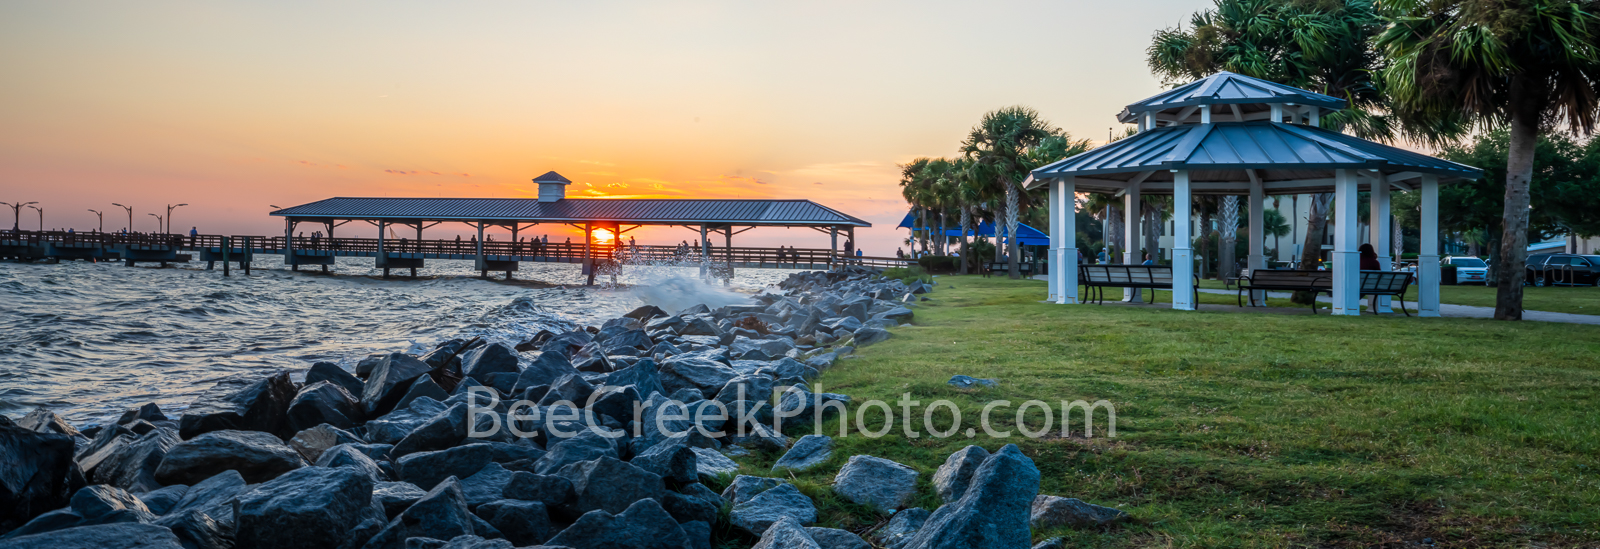 St. Simon Pier, sunset, gazebo, sun set, waters, east coast, golden isles barrier island, beach, tourist, pano, panorama, , photo